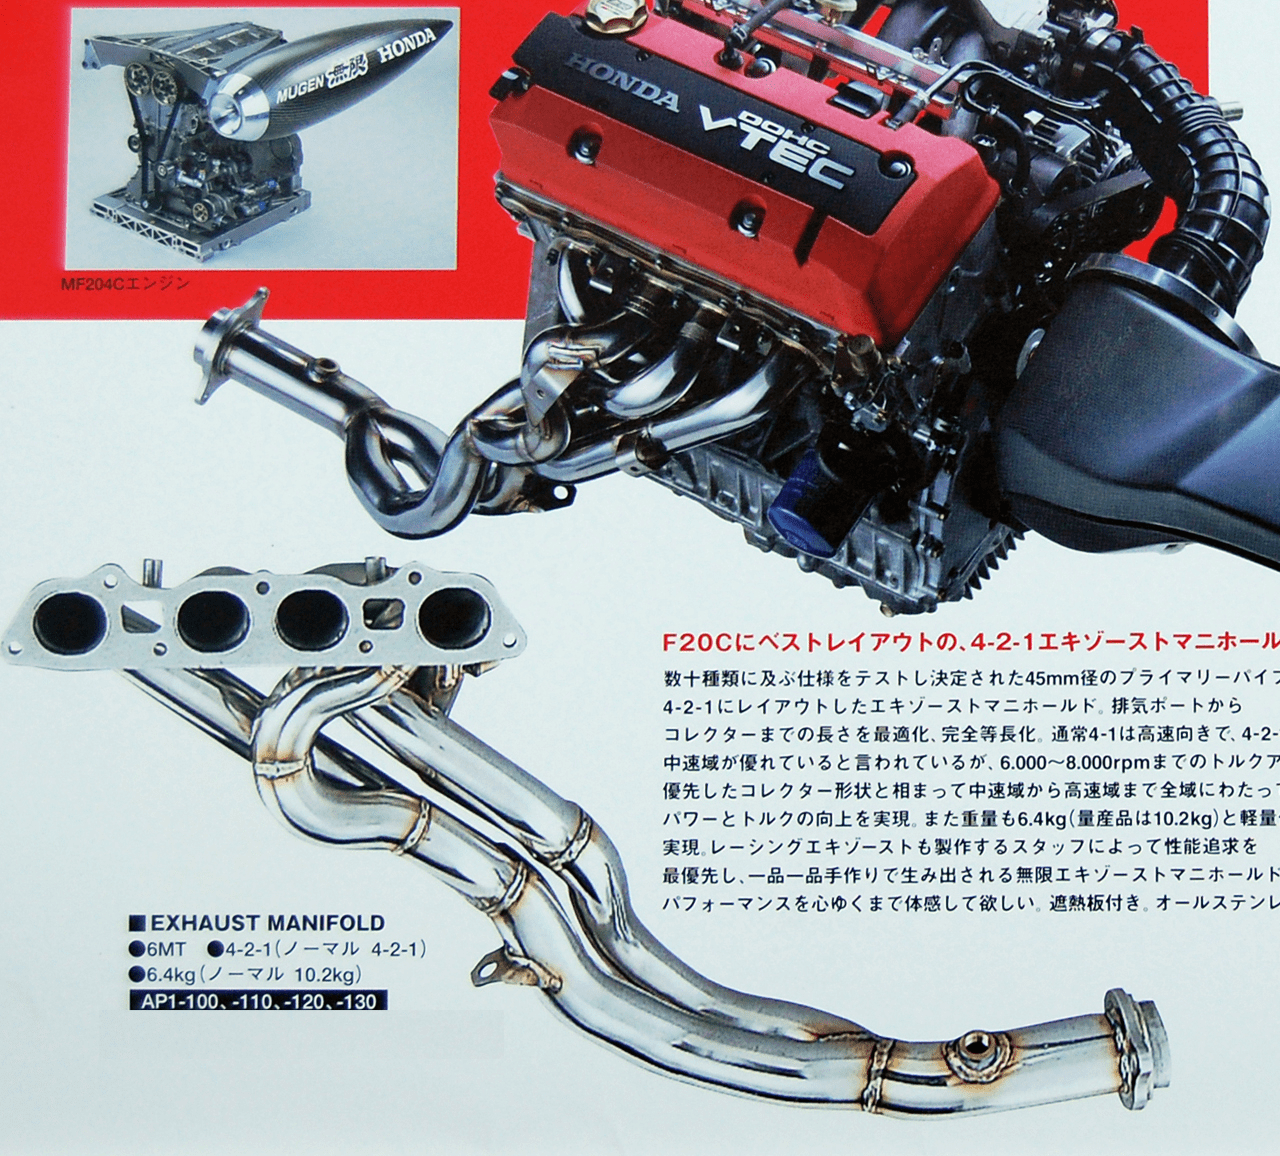 Mugen Exhaust Manifold/Header 4-2-1 for S2000 F20C/AP1 18100-XGS-K0S0